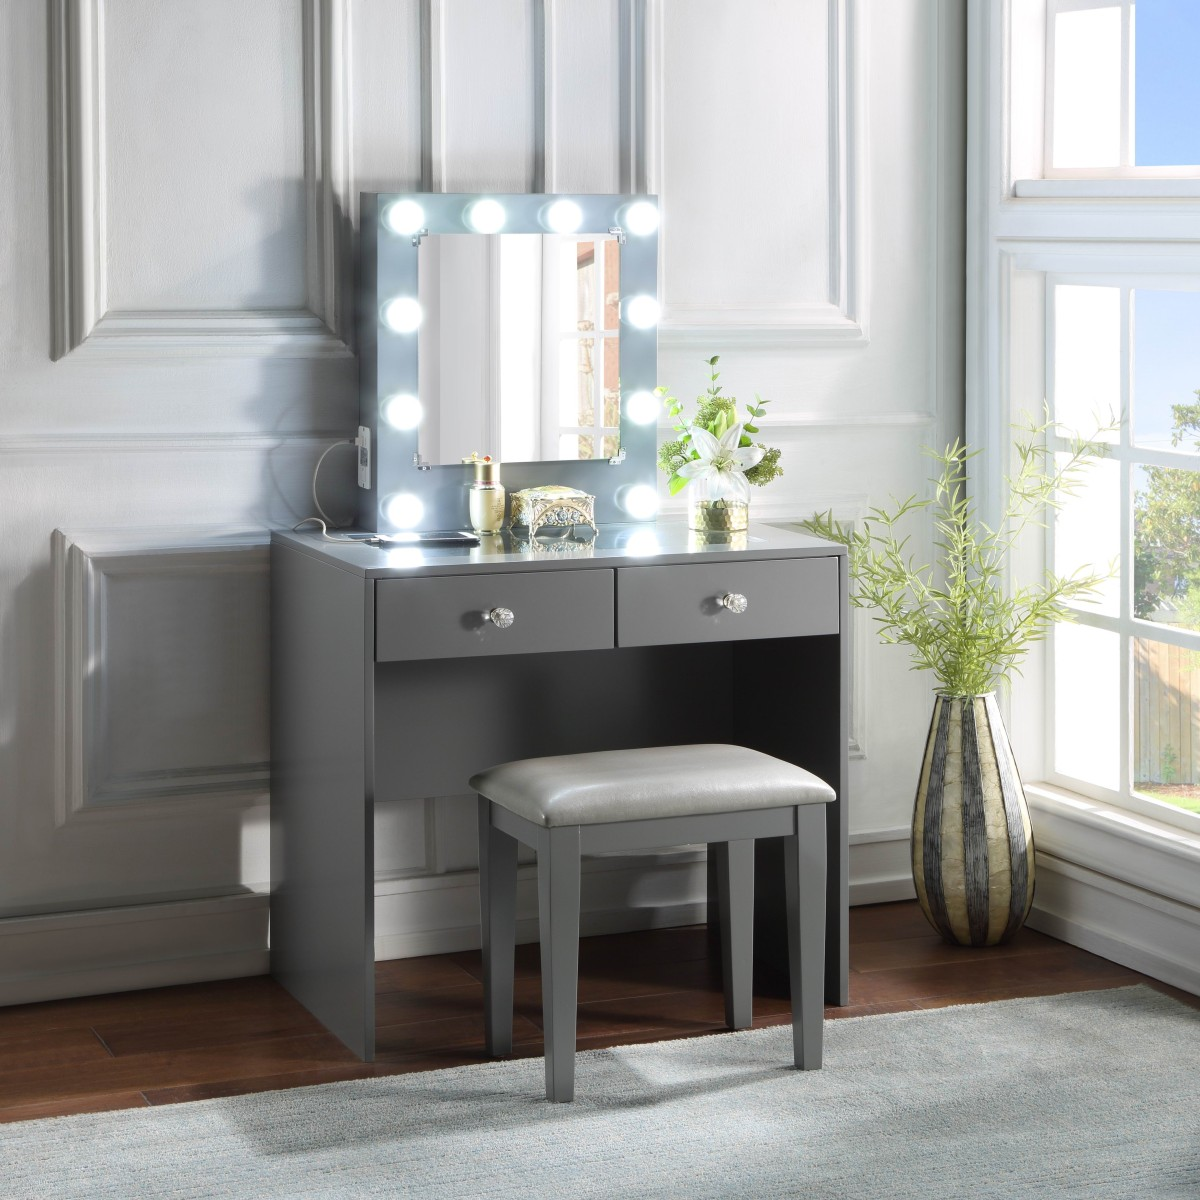 Homelegance HM7878GY-15 3 pc Bevelle gray finish wood bedroom make up vanity set LED light mirror